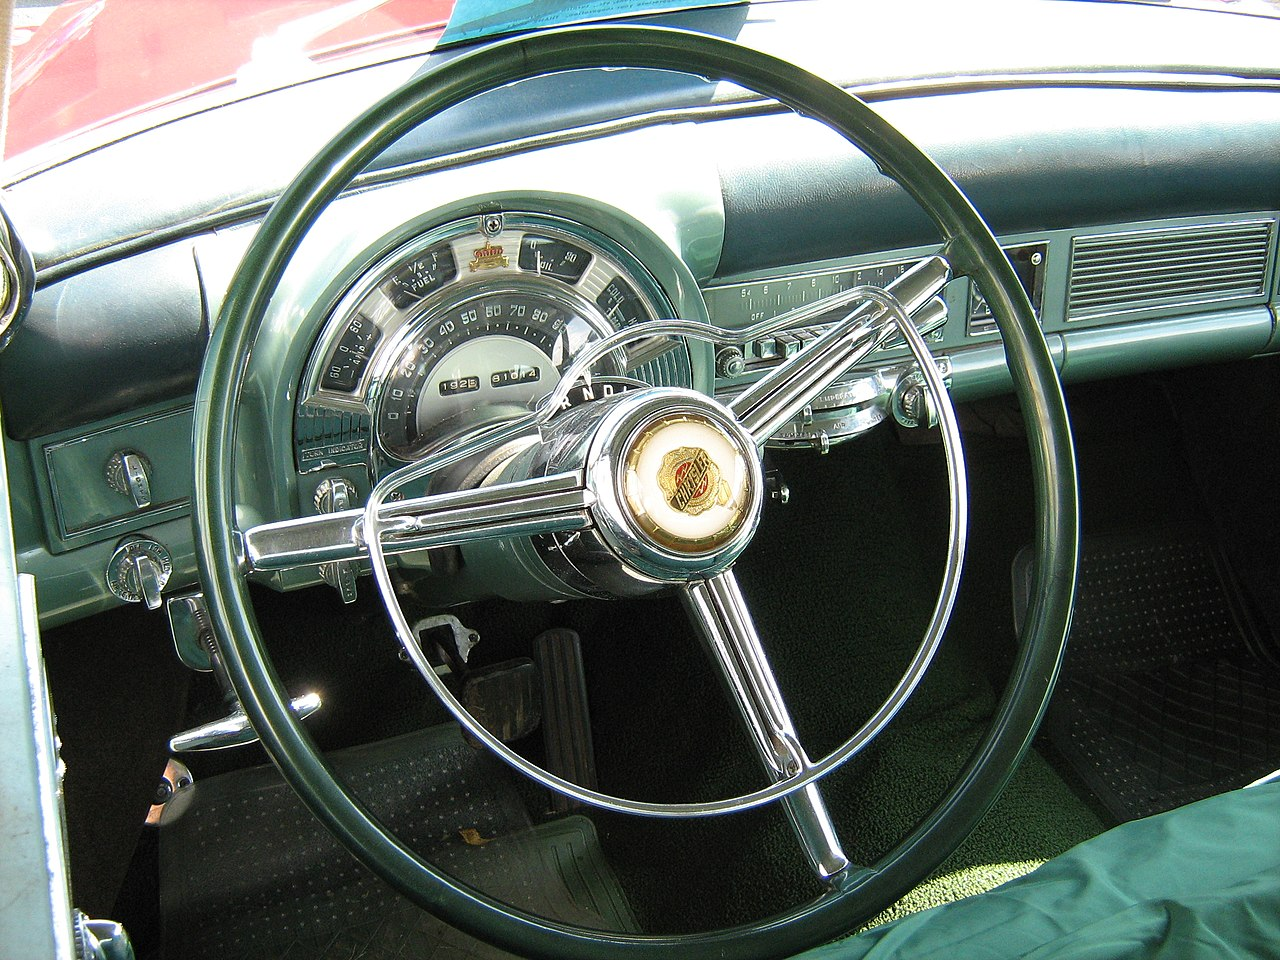 File:1953 Imperial 2-tone with AC dash.jpg - Wikimedia Commons